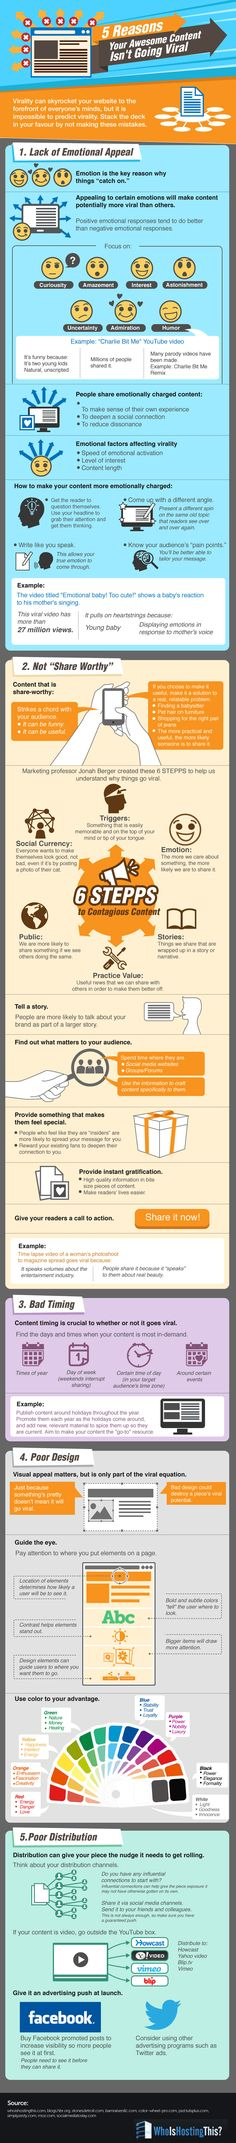 The Science Behind Going #Viral - #infographic #socialmedia